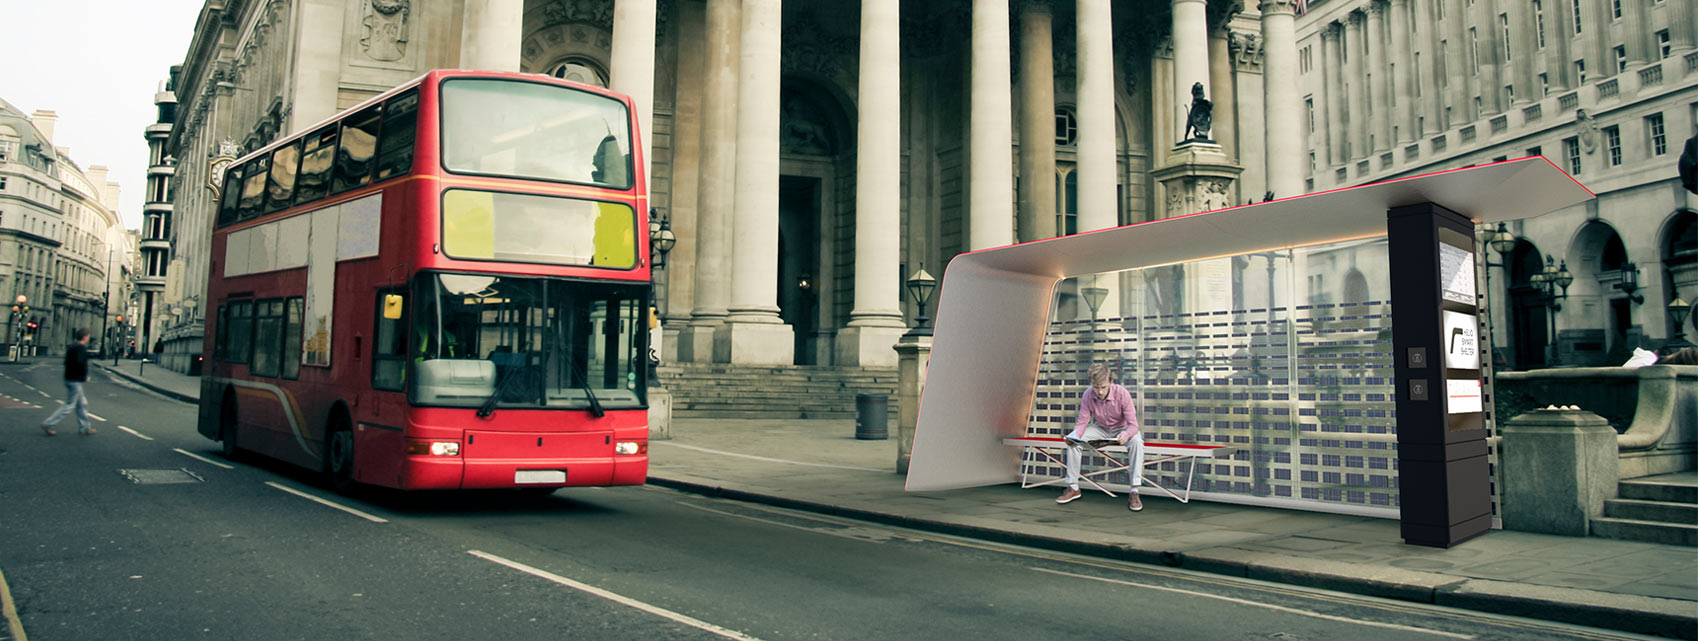 Helio-Smart-Shelter-London